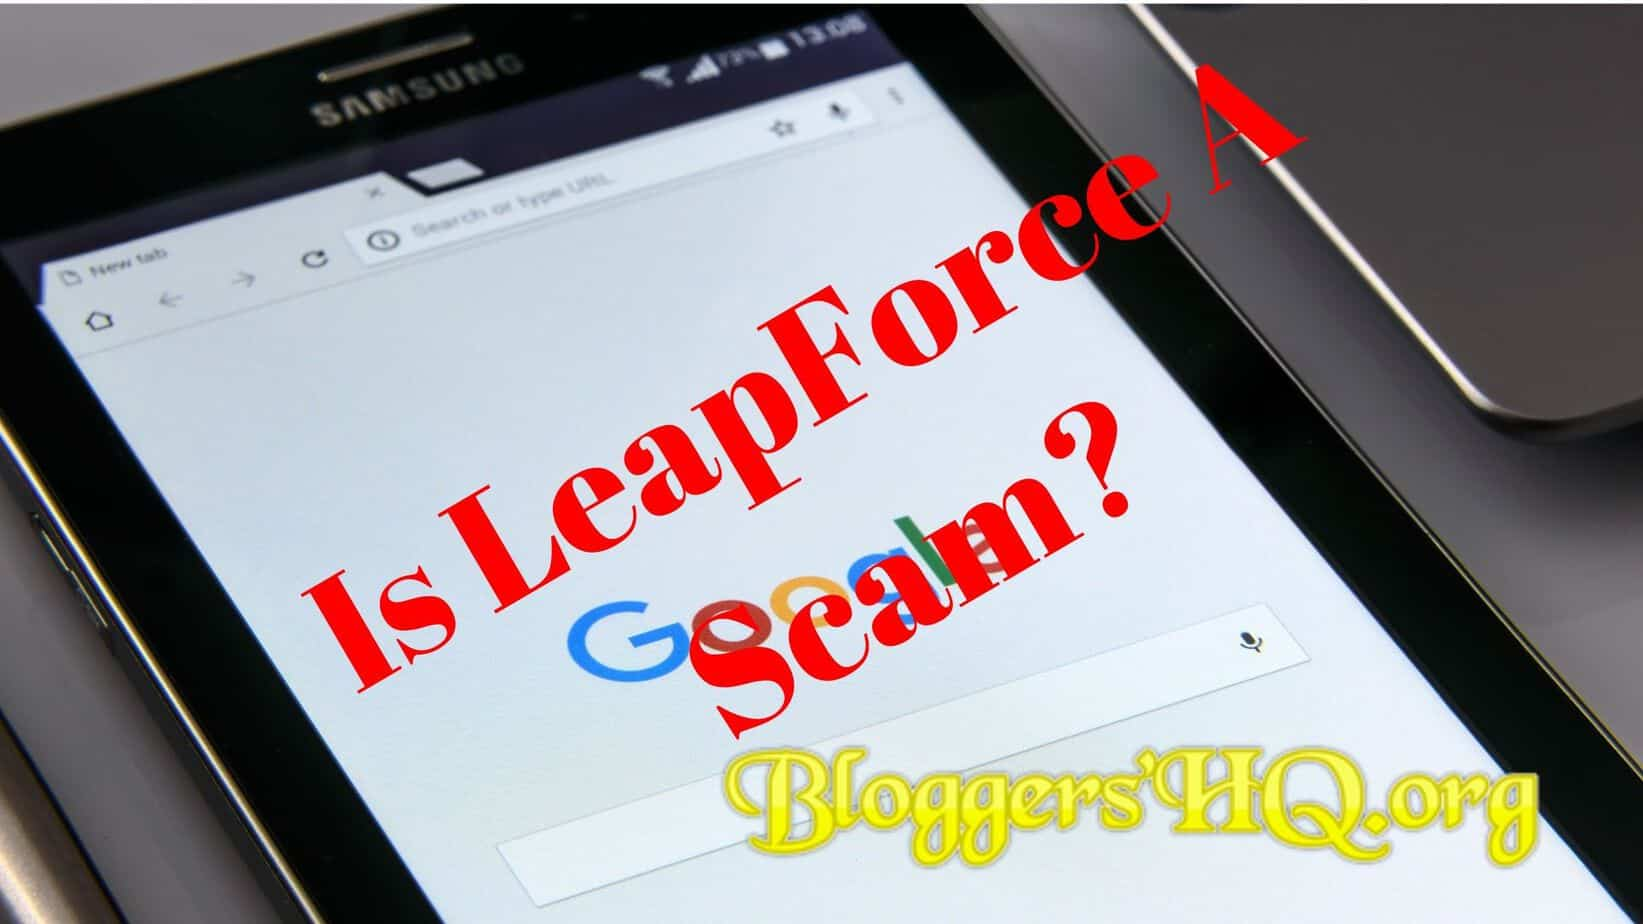 LeapForce Review – Scam Or Legit? [Revealed] | BloggersHQ Org